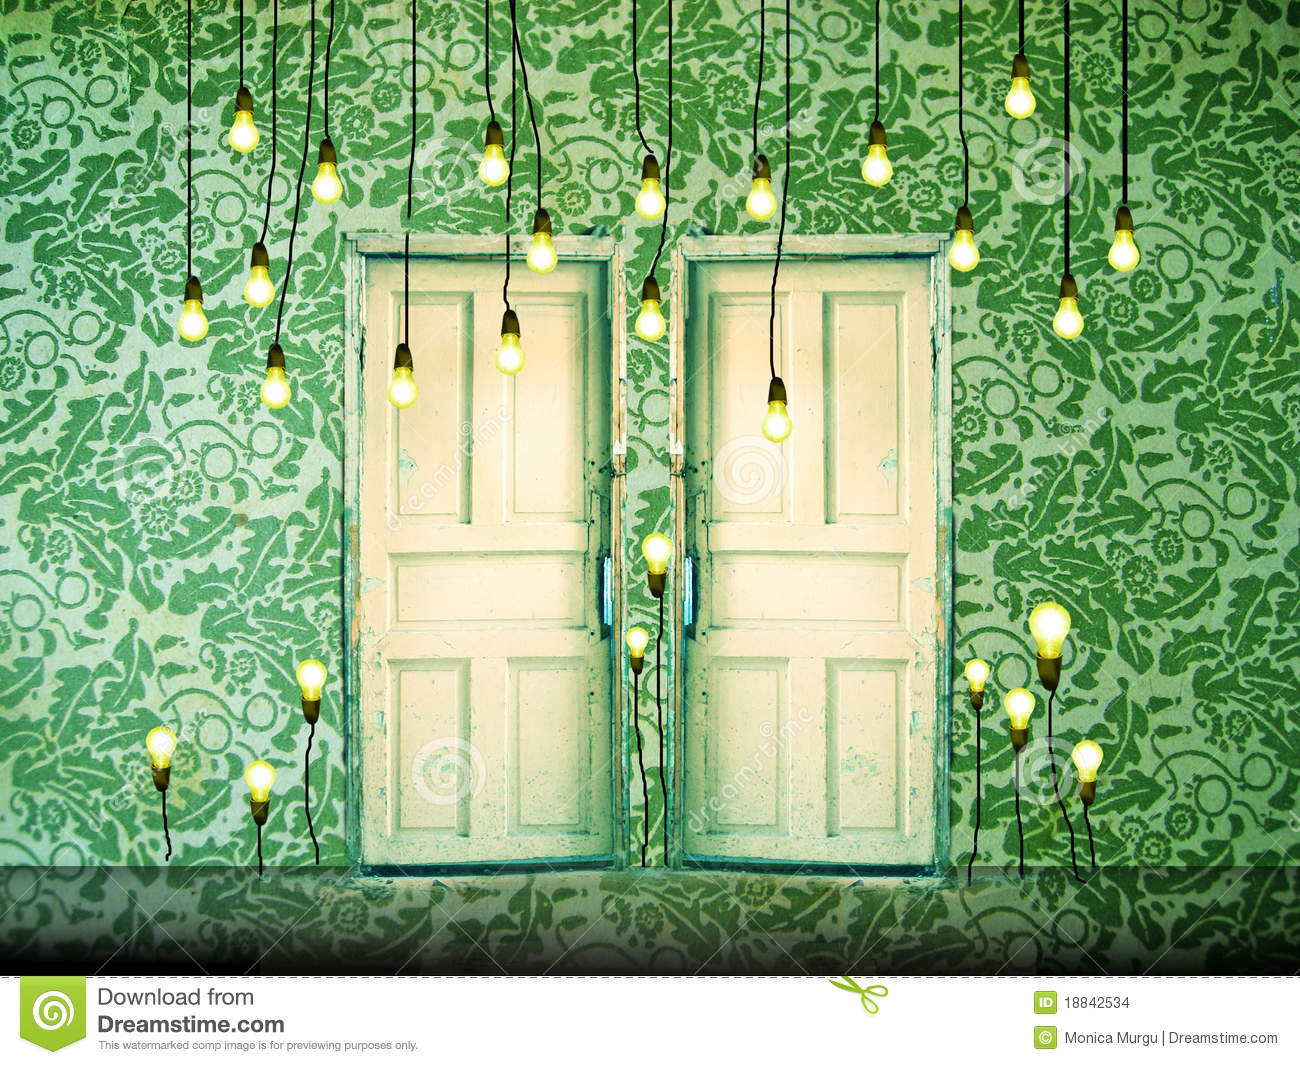 Surreal Background With Doors And Liht Bulbs Stock Photo